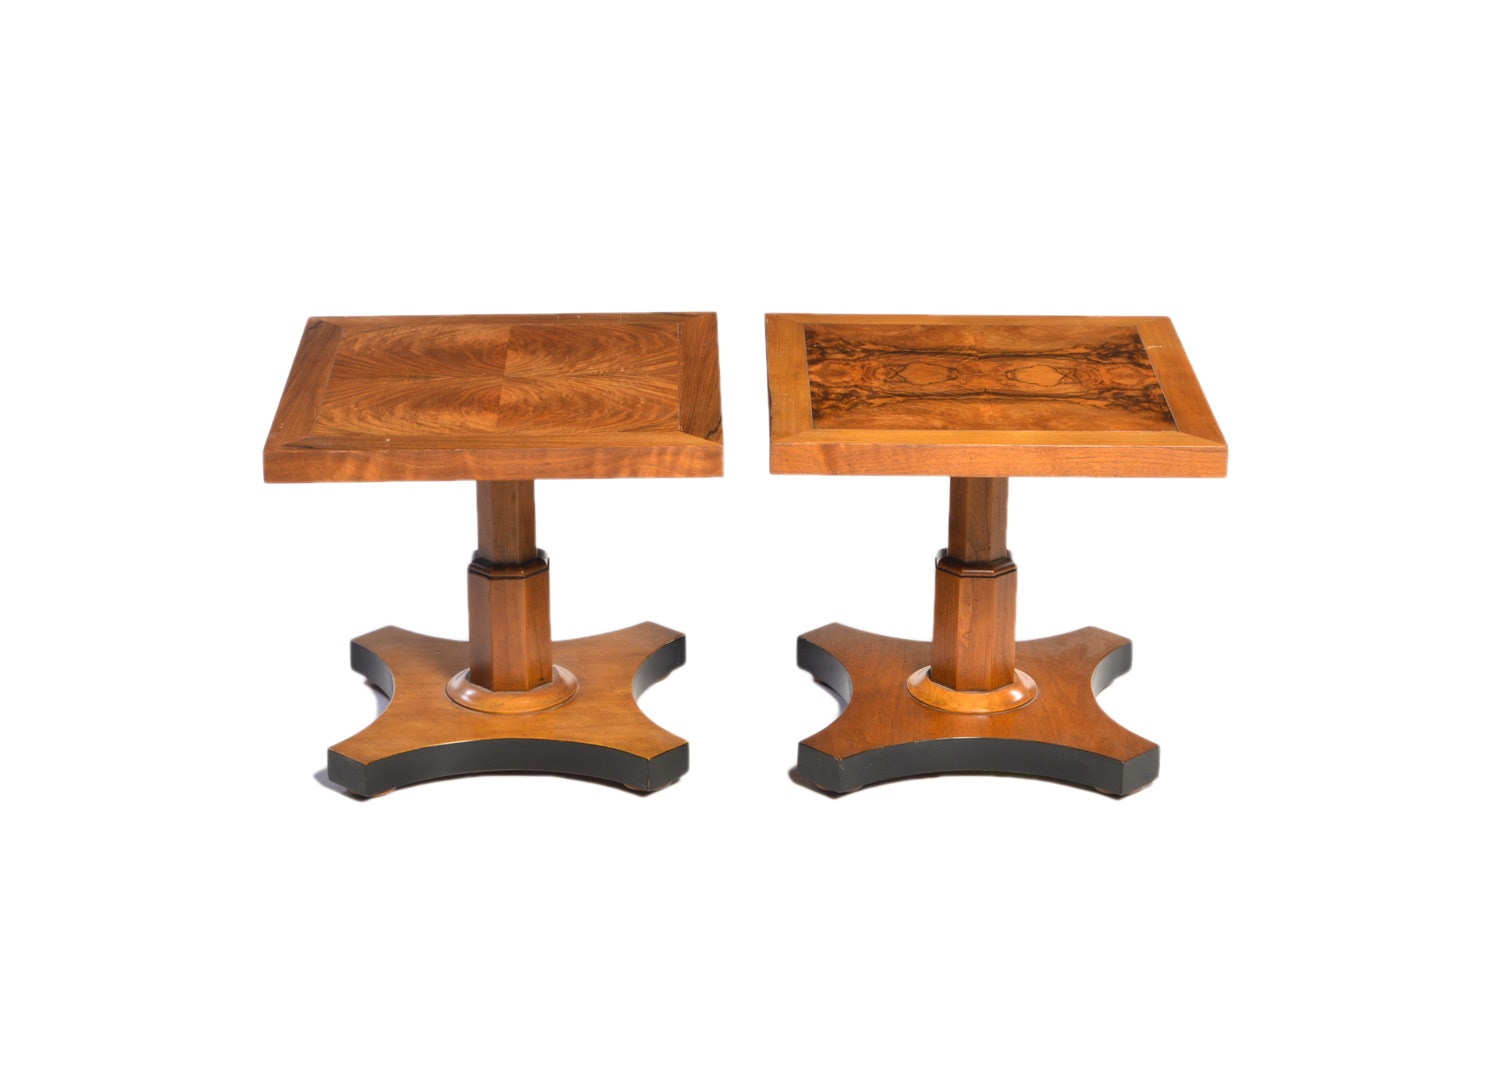 Burl Wood Accent Tables by Baker Furniture